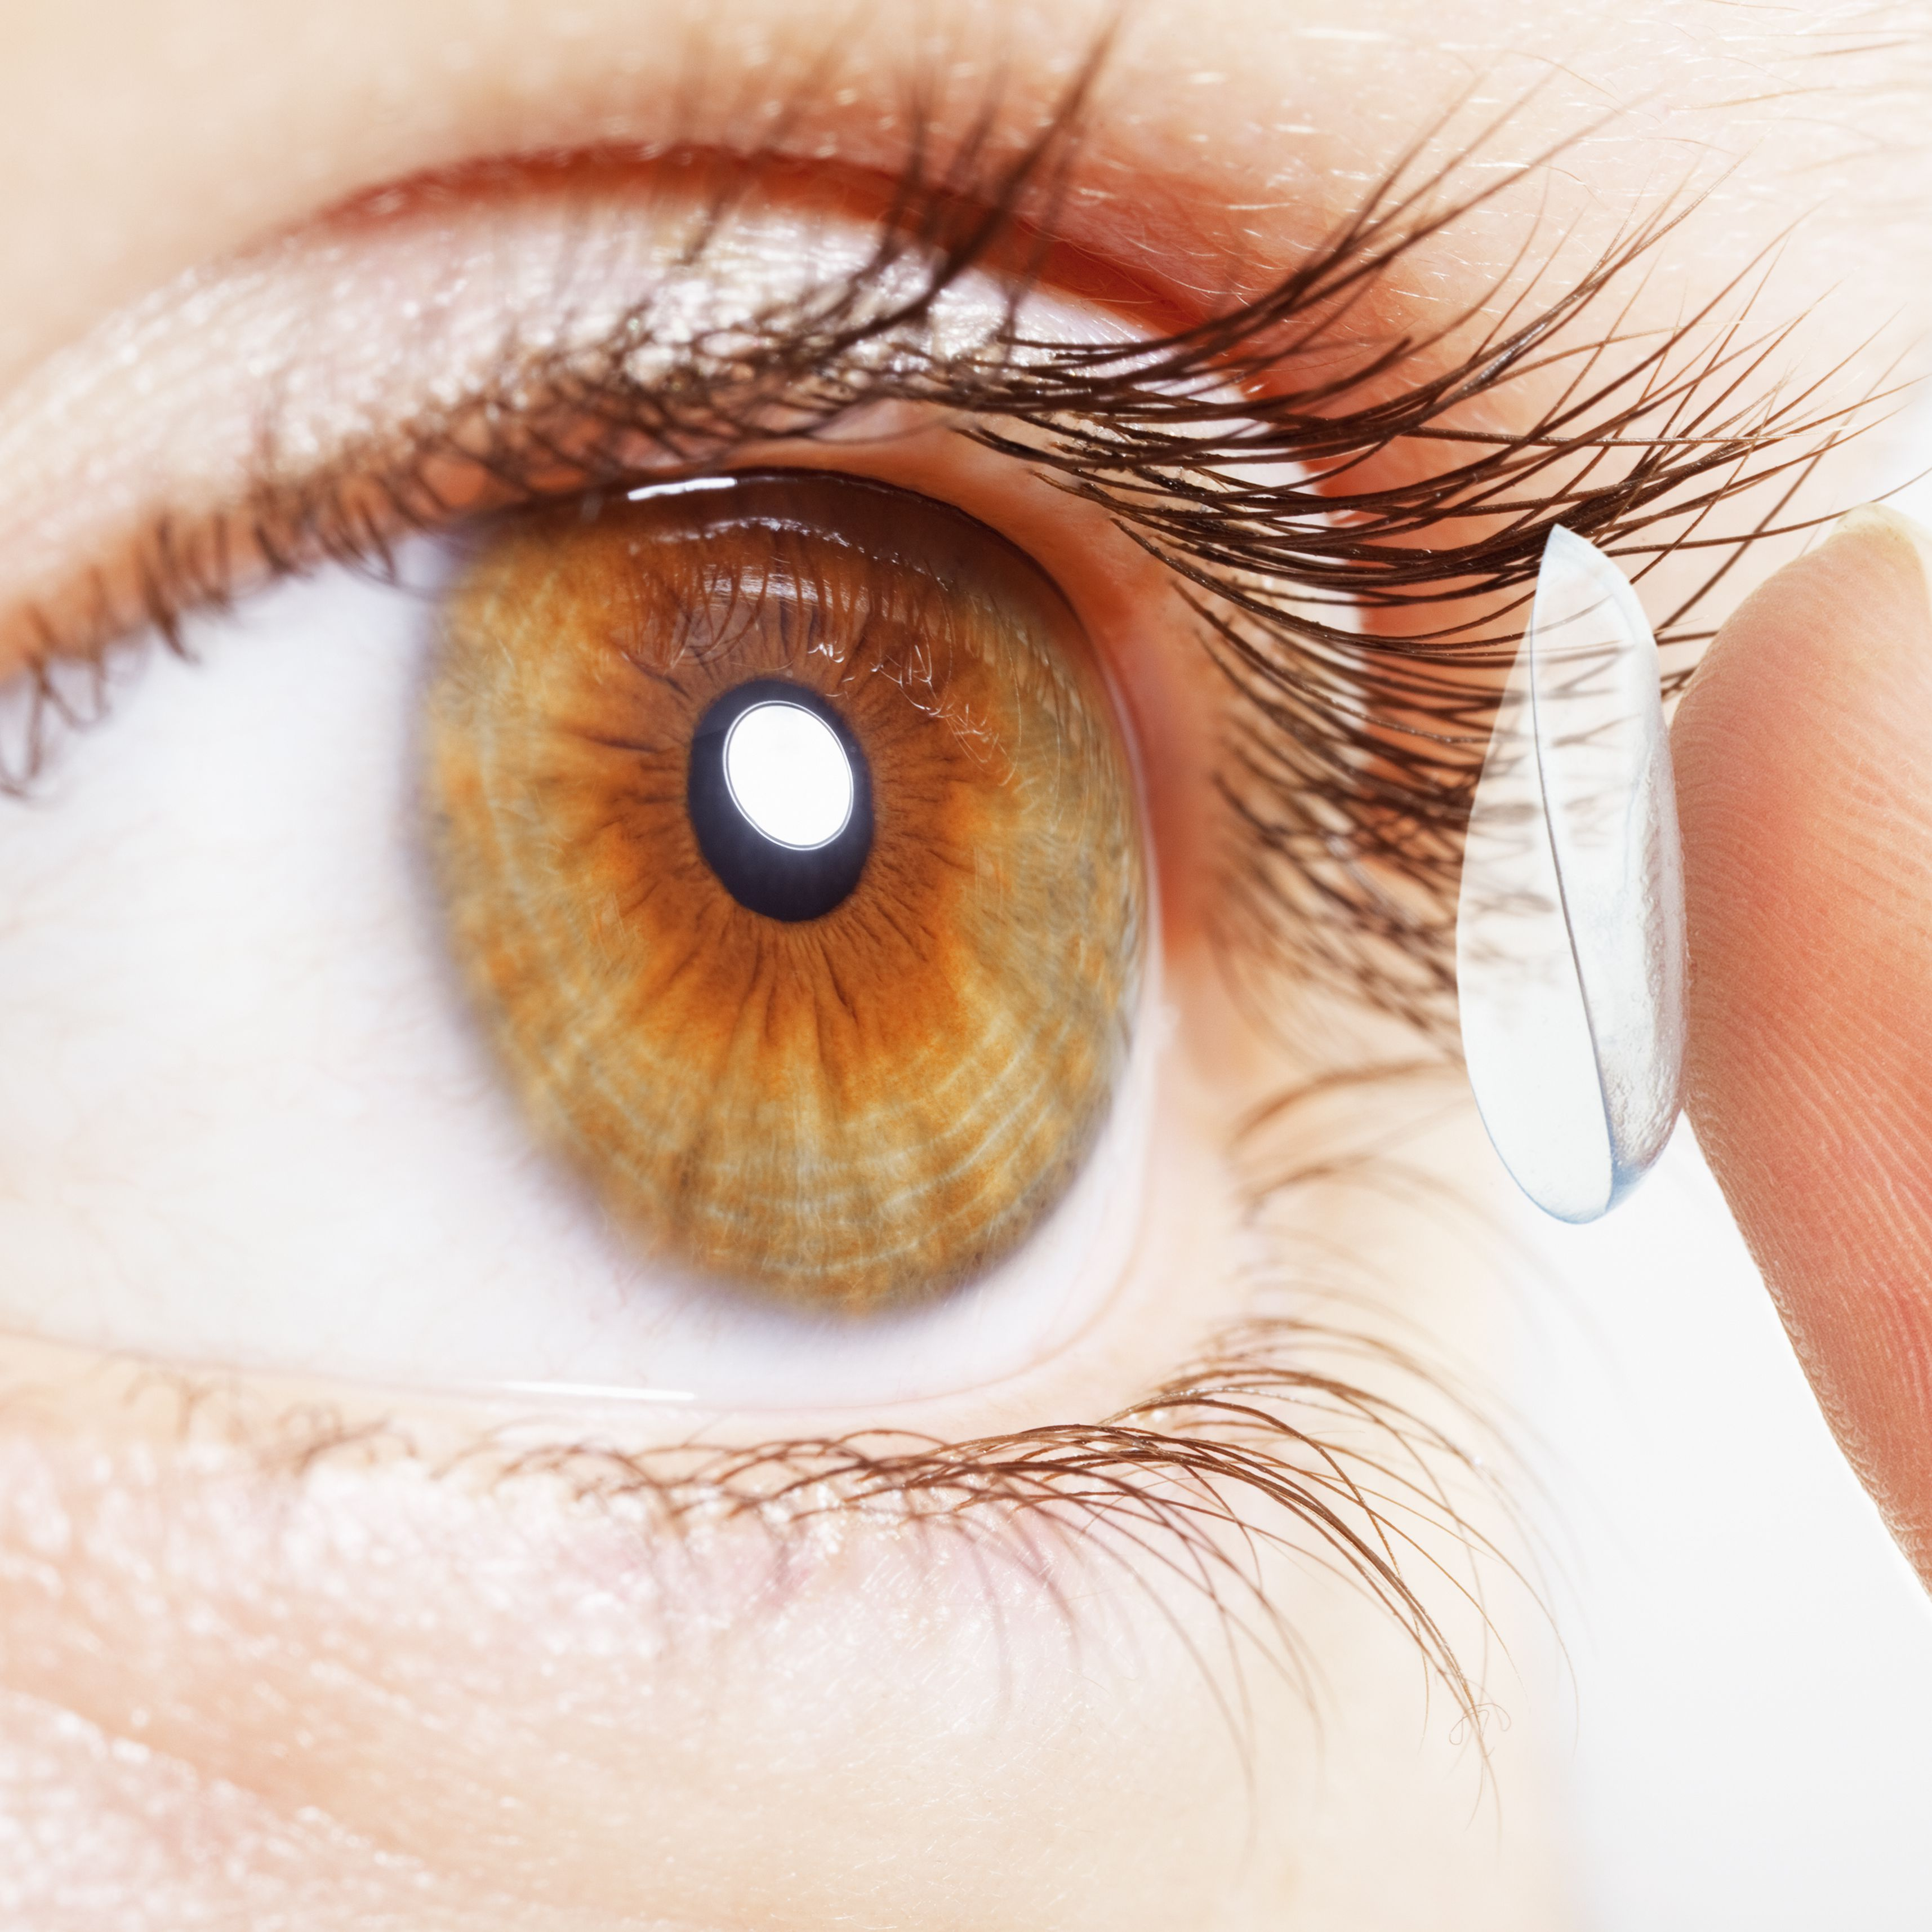 What Are Contact Lenses Made Of?